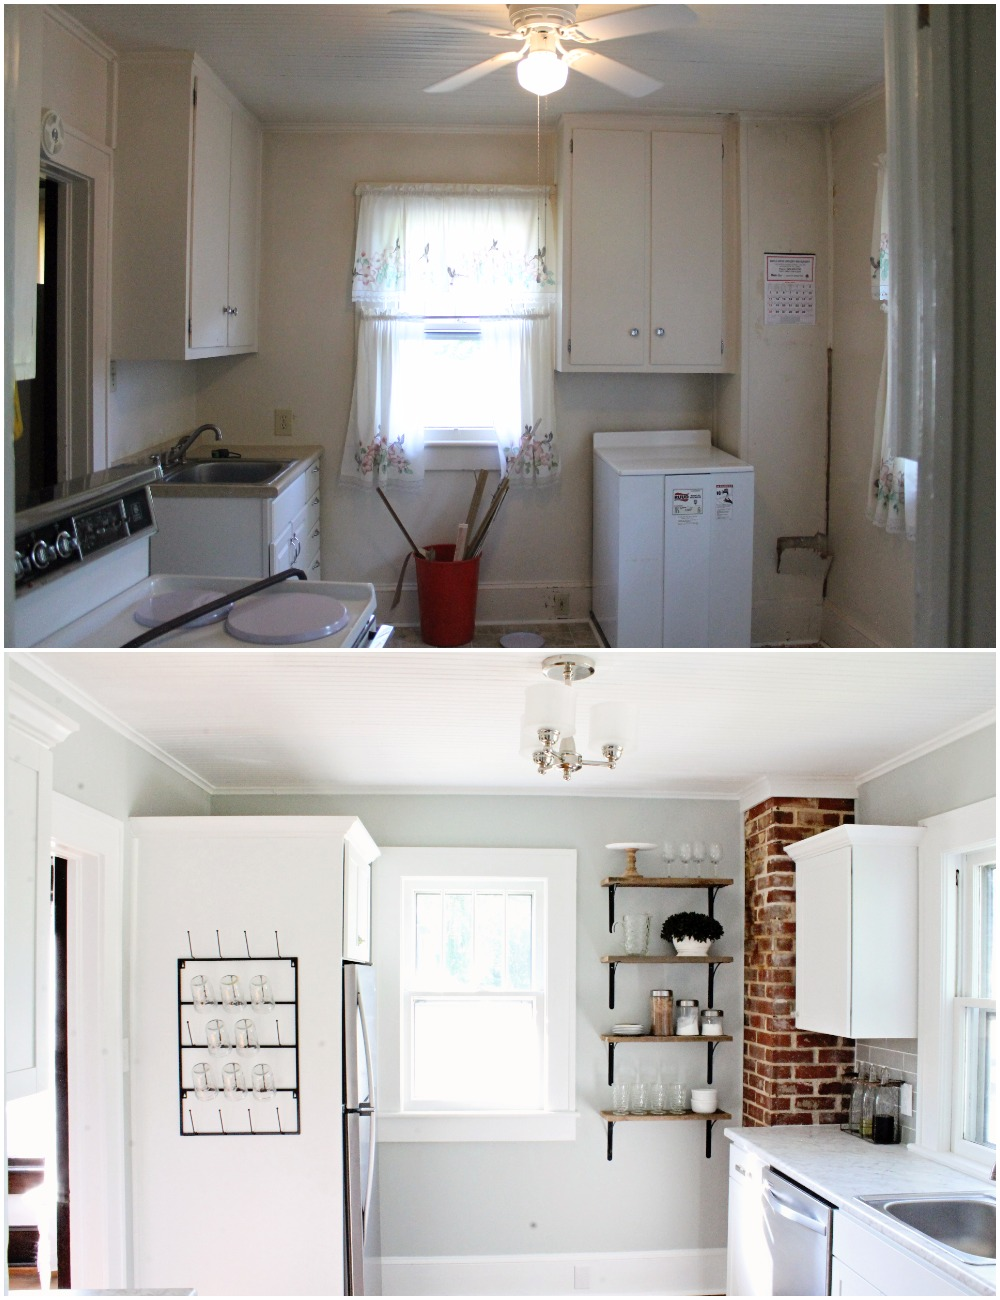 House Flipping Before and Afters - DIY BUDGET KITCHEN IDEAS WHITE SHAKER CABINETS (3).jpg